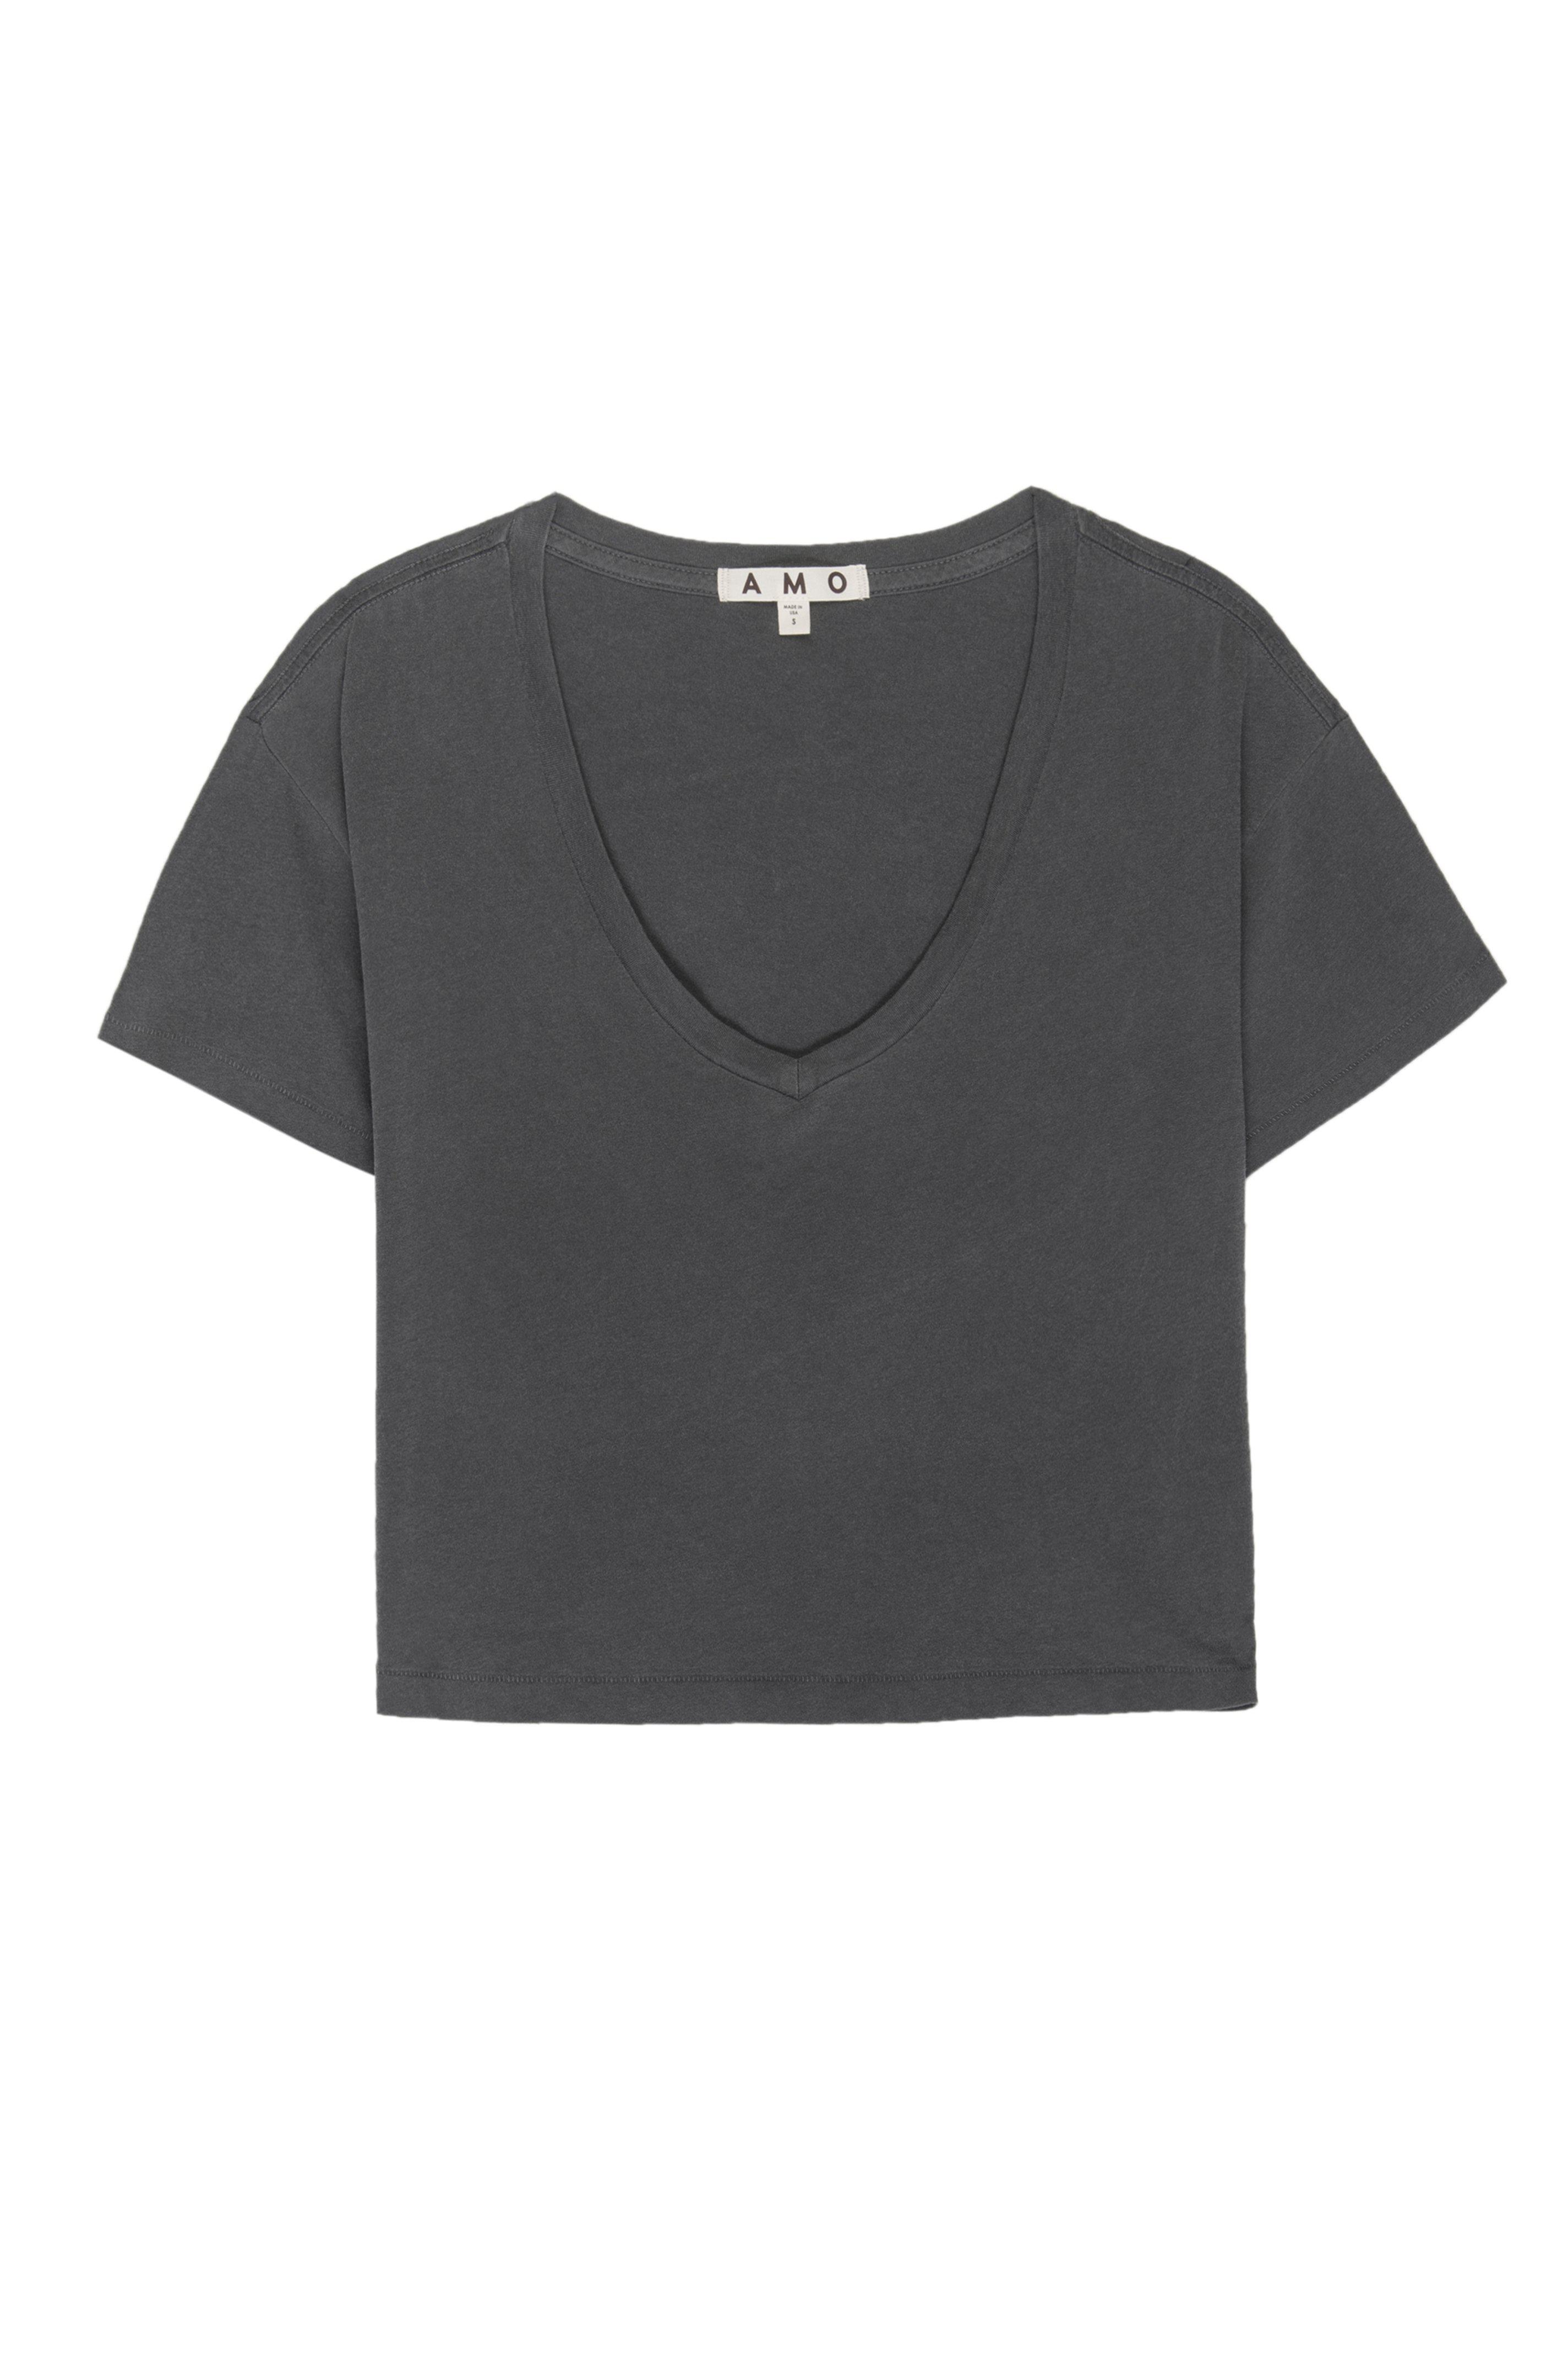 CROPPED V NECK TEE FADED BLACK